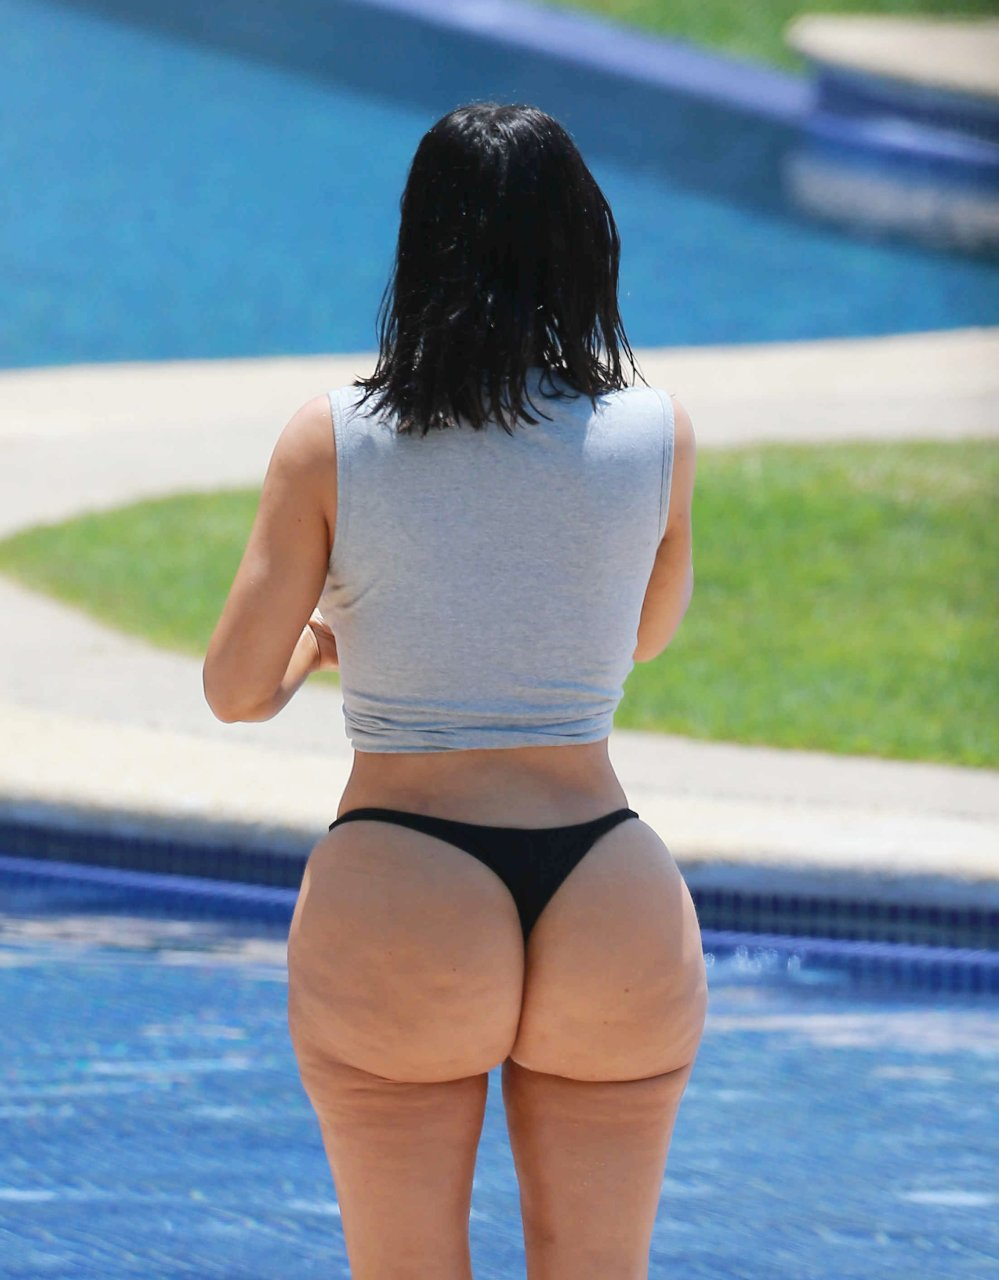 Massive Ass In Thong